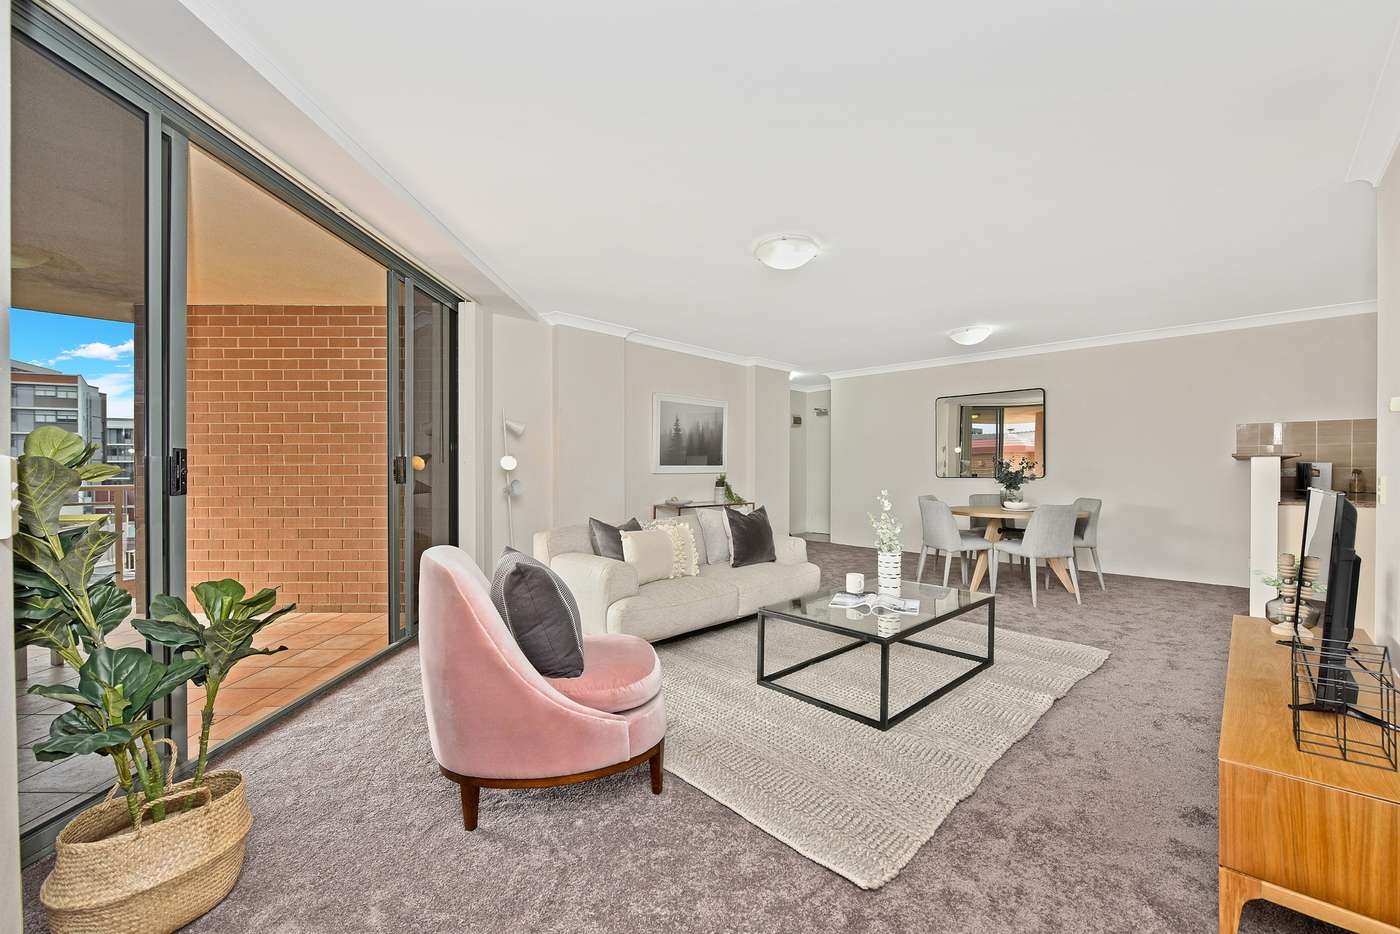 Main view of Homely apartment listing, 3A06/767 Anzac Parade, Maroubra NSW 2035